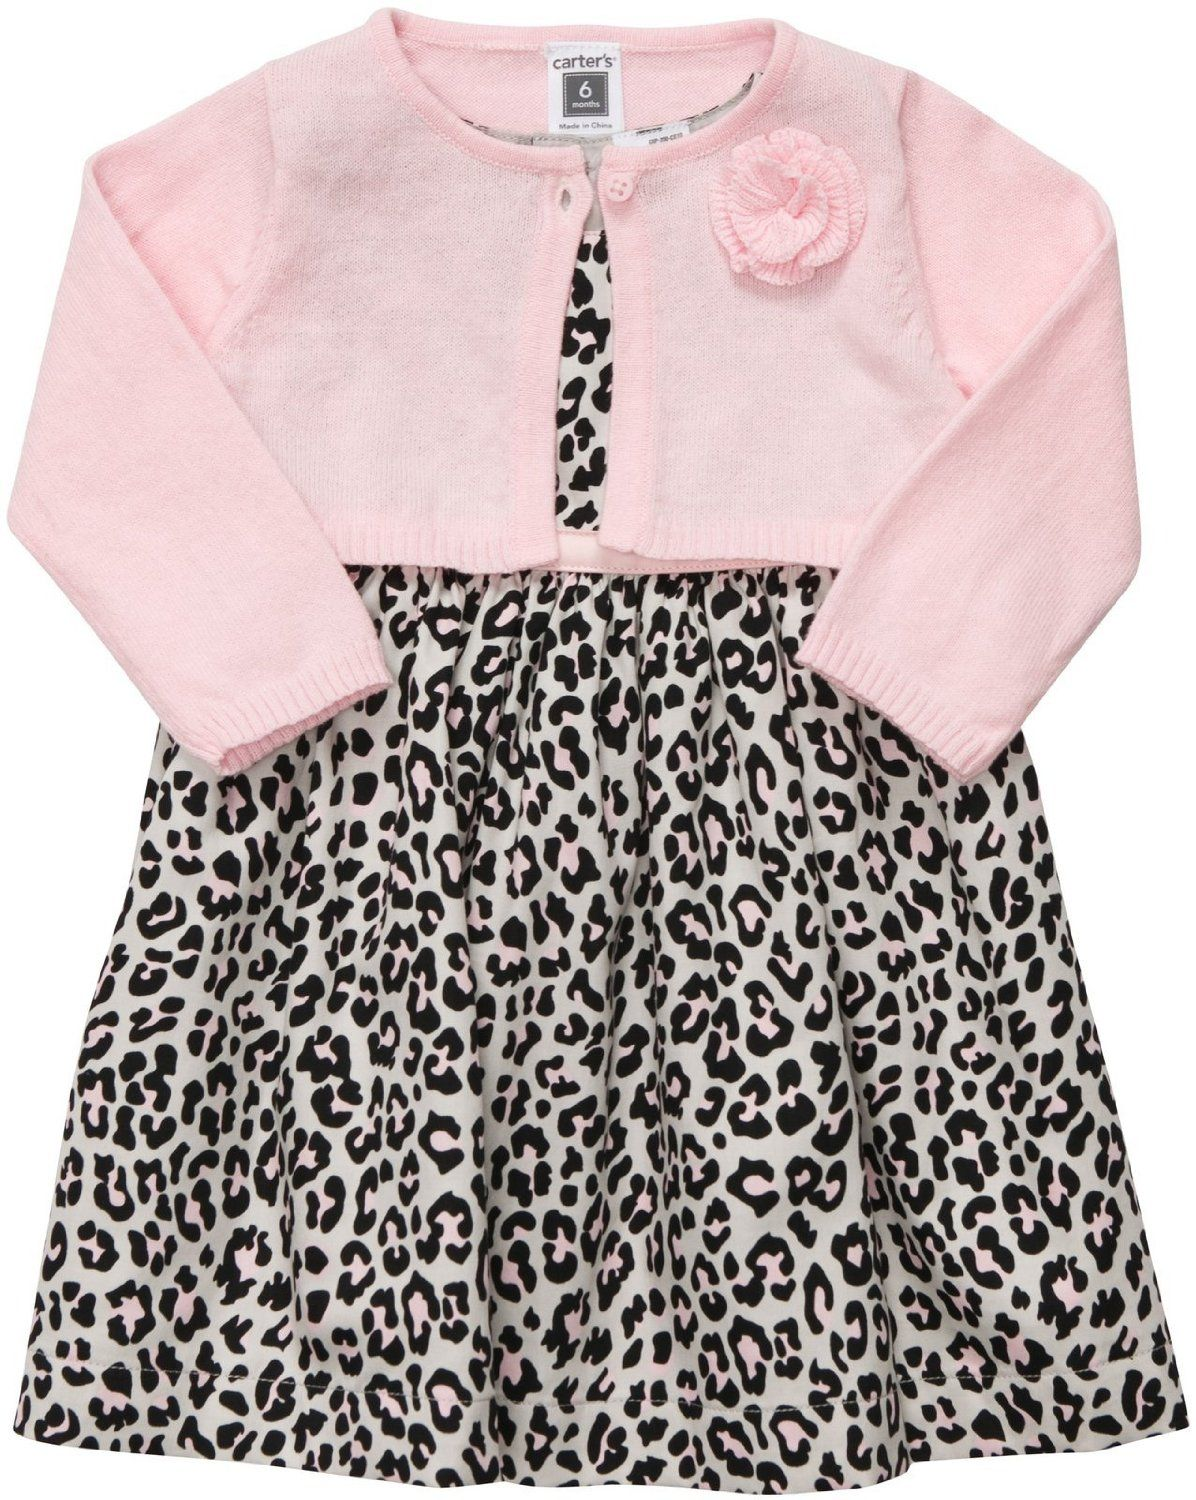 Amazon.com: Carter's Baby Girl's Dress & Cardigan Set: Clothing ...